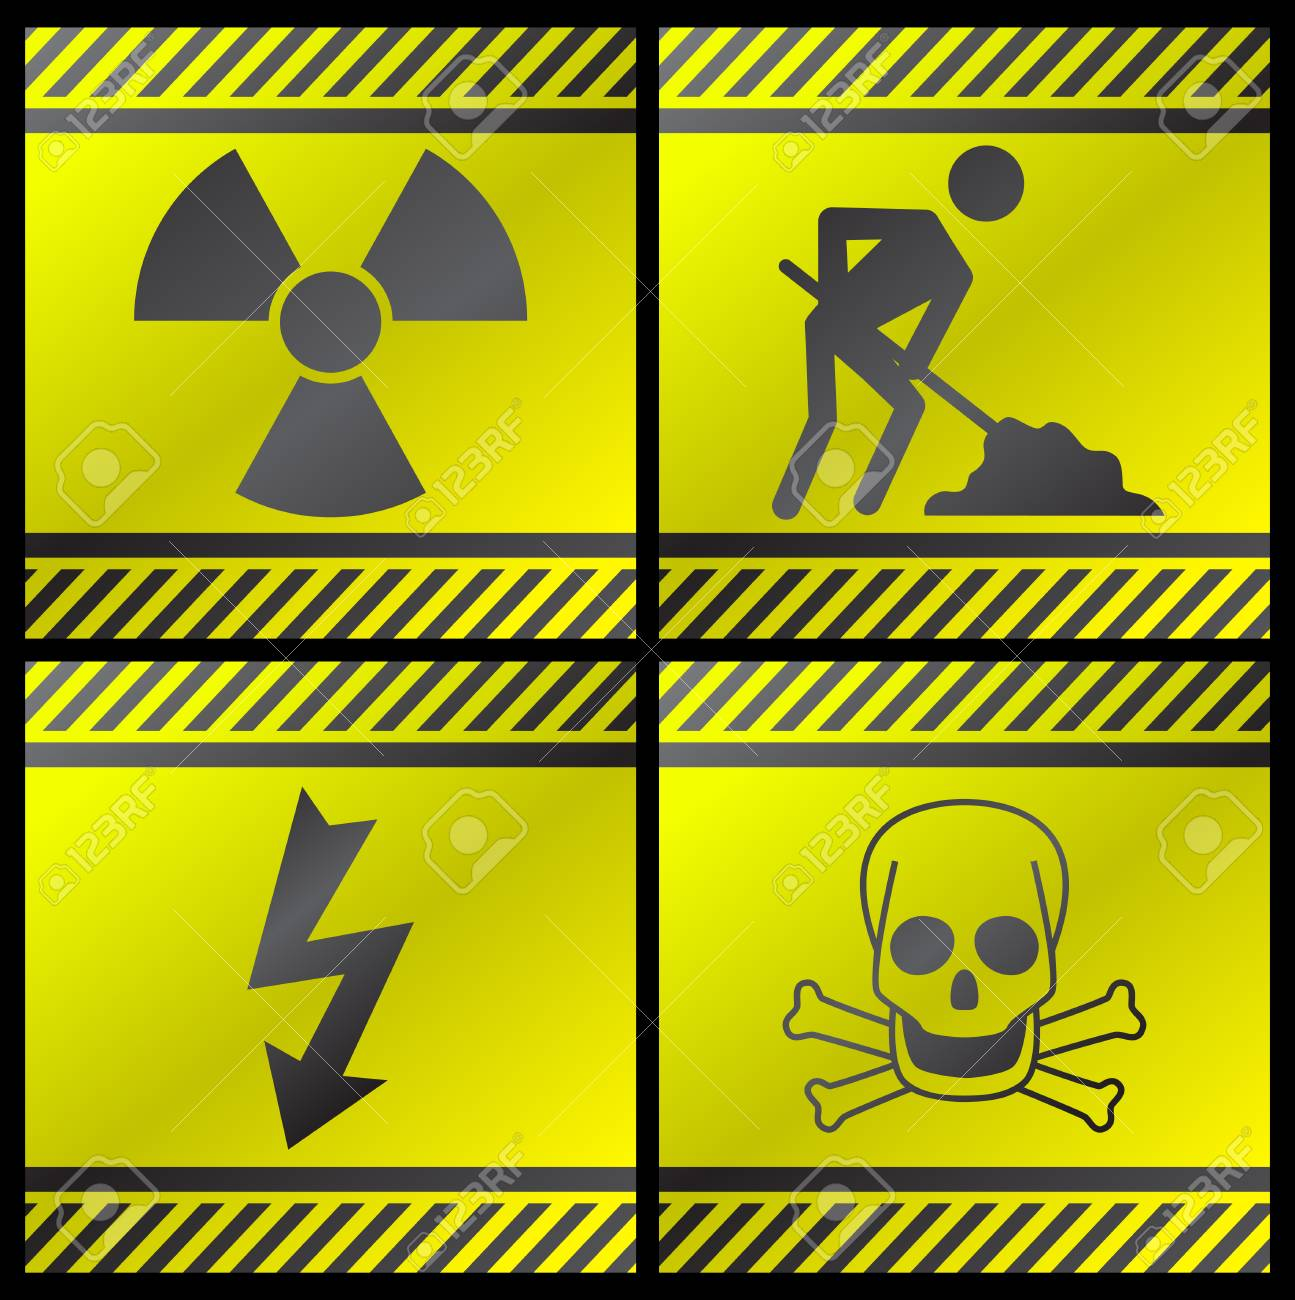 Danger signals gray and yellow on a white background Stock Vector - 4464288